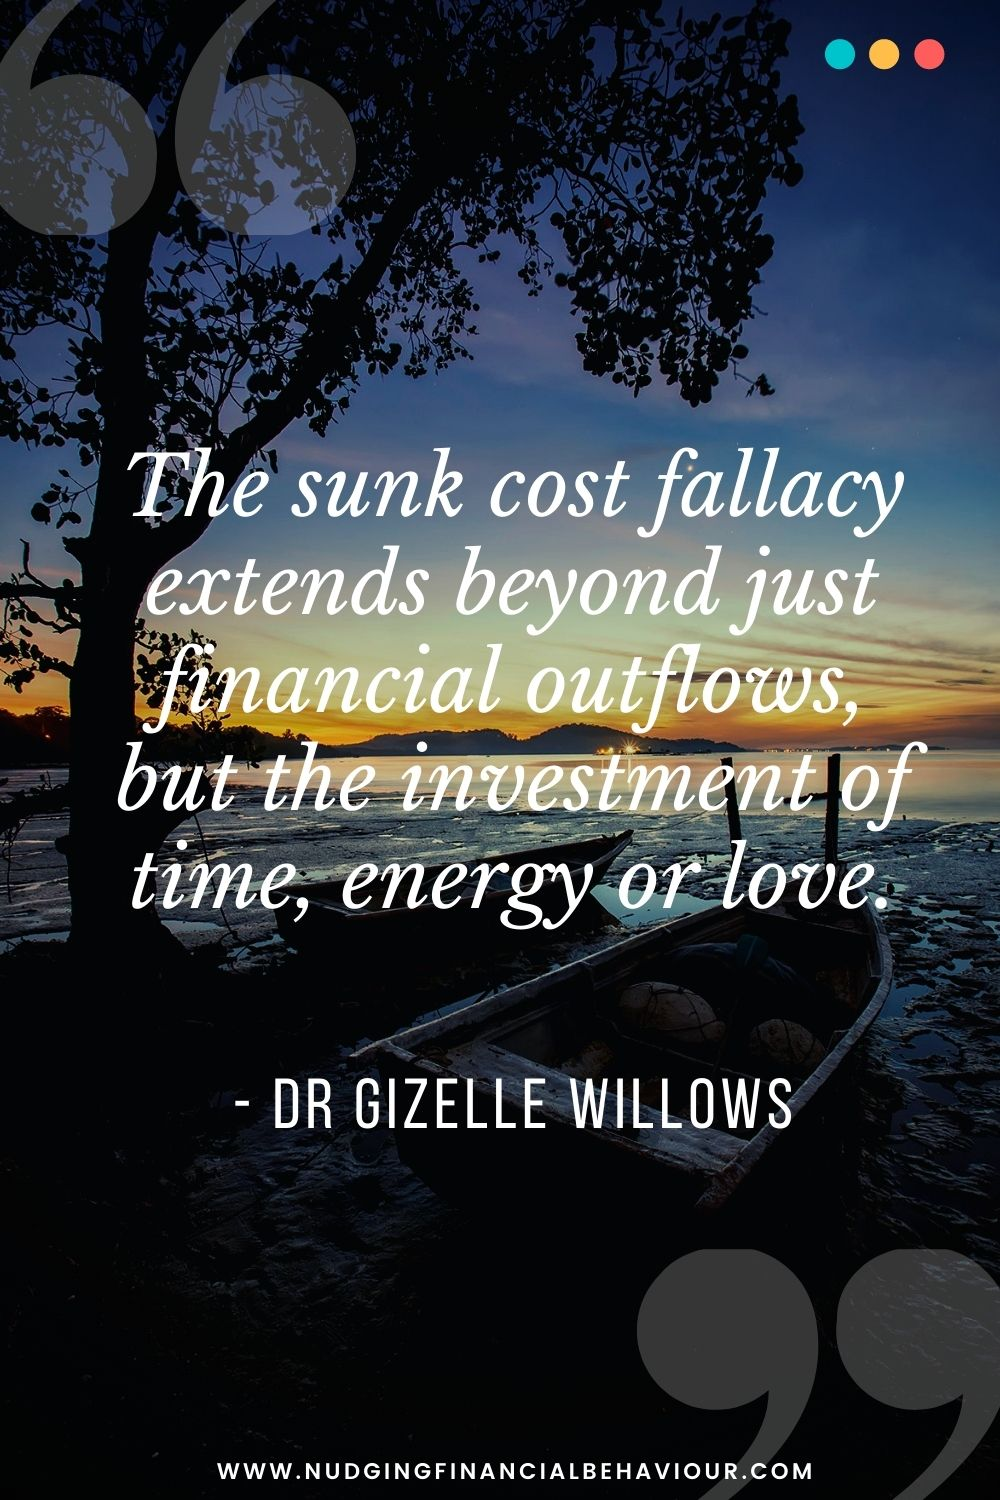 Time and energy invested